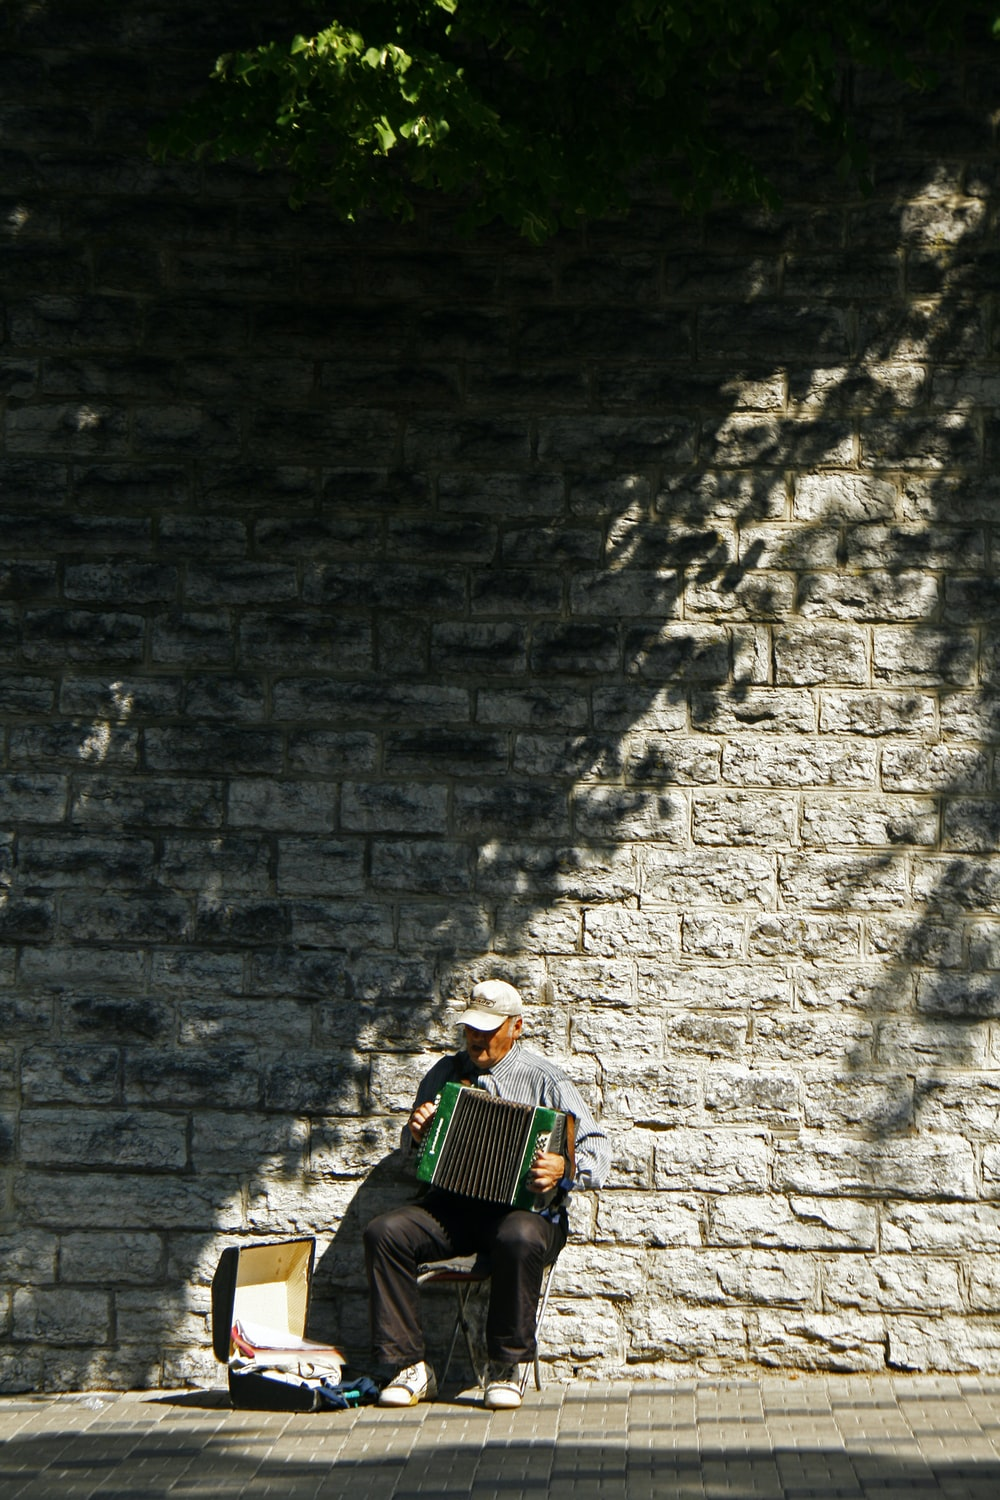 man wearing grey shirt playing accordion instrument while sitting near concrete wall and case during daytime